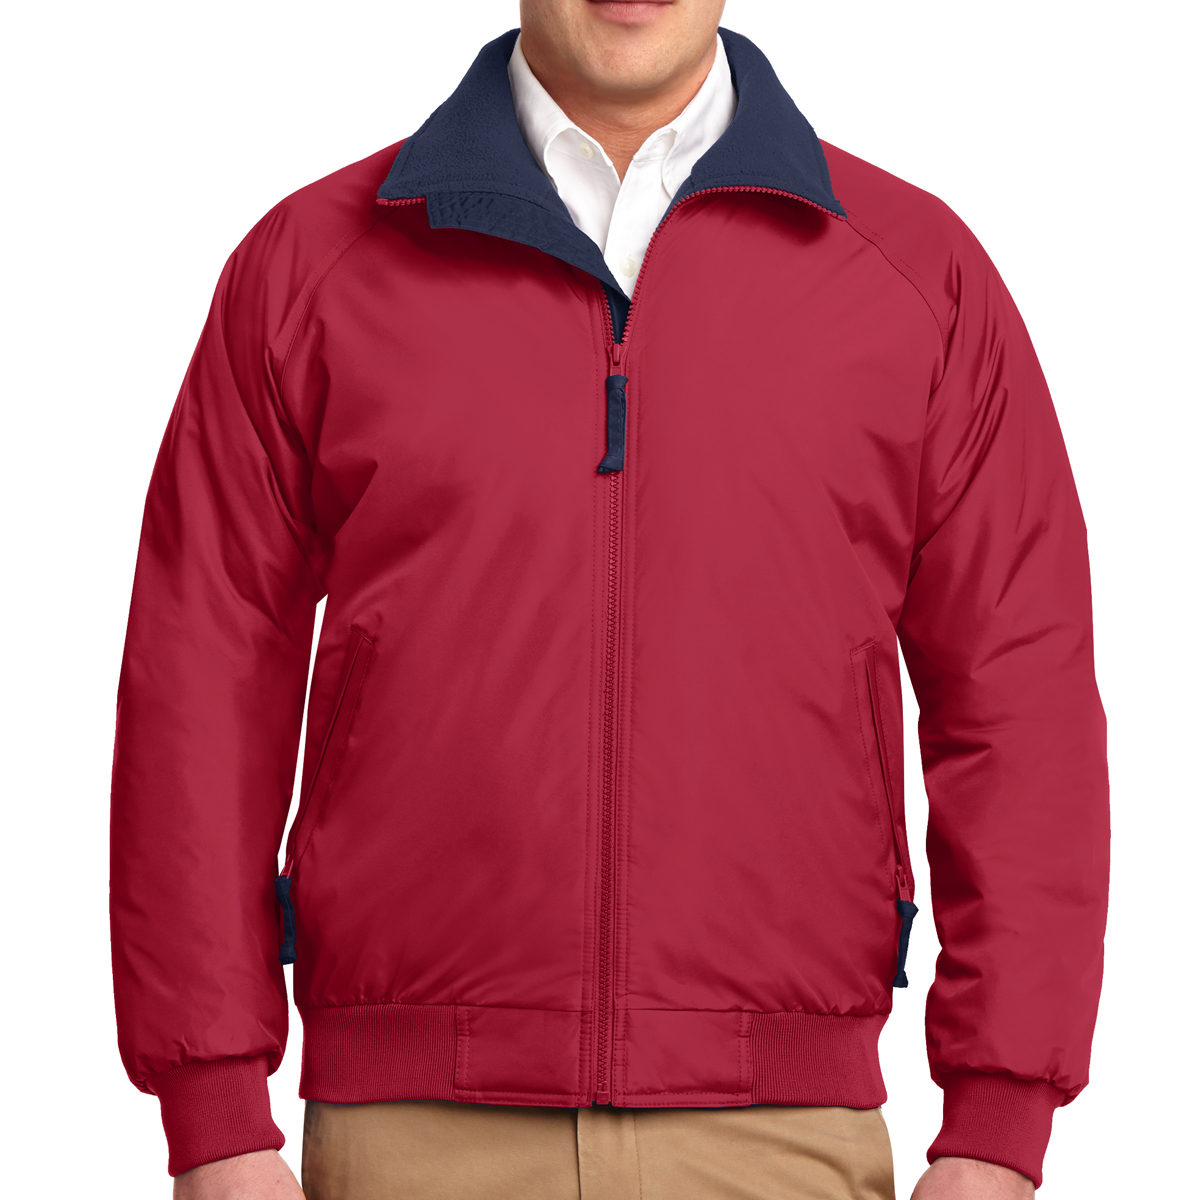 8b790608871 J754 Port Authority® Challenger™ Jacket - Hit Promotional Products